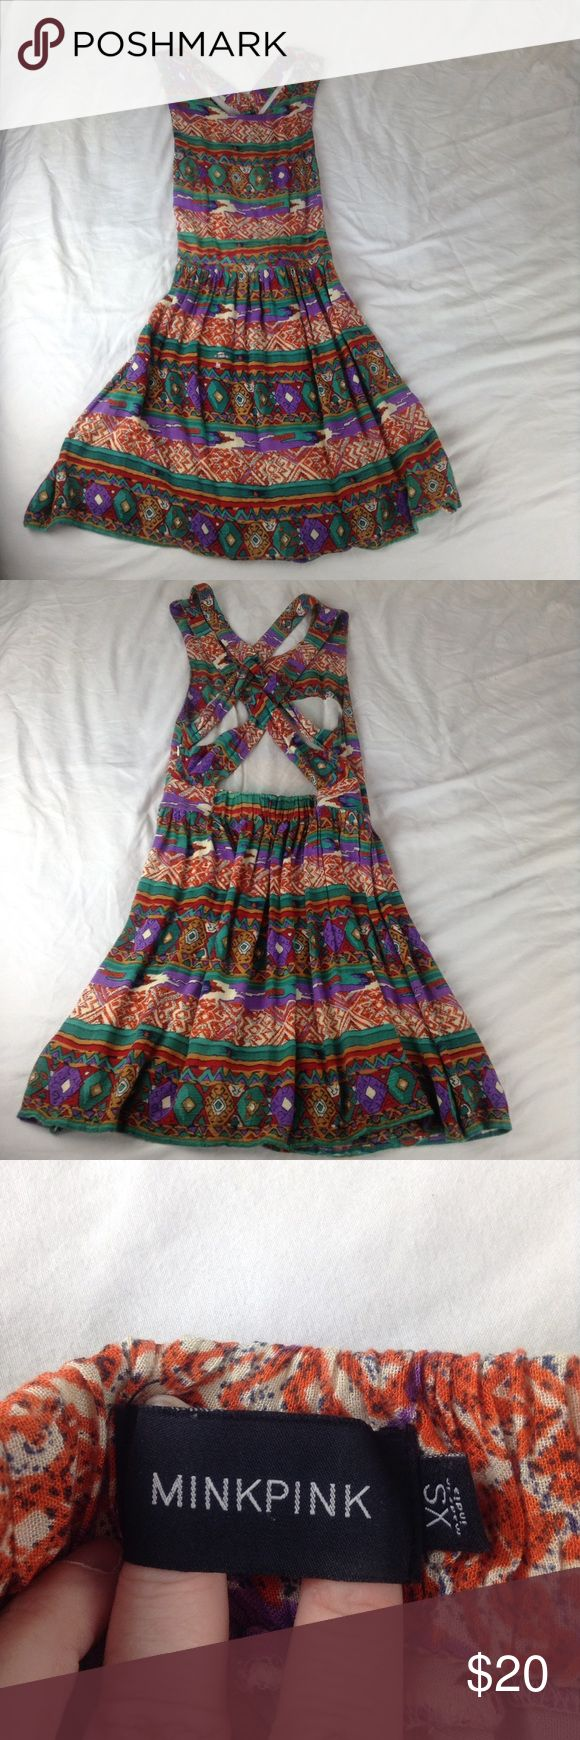 """Minkpink Woodstock Aztec Boho Cross Back Dress This is a Minkpink Dress  STYLE: Strap Back  COLOR: Multi-Colored  SIZE: Women's XS  CONDITION: Preowned/used - Excellent condition with no stains or damage  MEASUREMENTS: 16"""" armpit to armpit, 14.5"""" seam to seam at the waist, and 37.5"""" in length from shoulder seam to hem.   All clothing from my closet comes from a pet free and smoke free home.   SHIPPING TIME: I ship all items within 1 business day. (Except on holidays and weekends) MINKPINK…"""